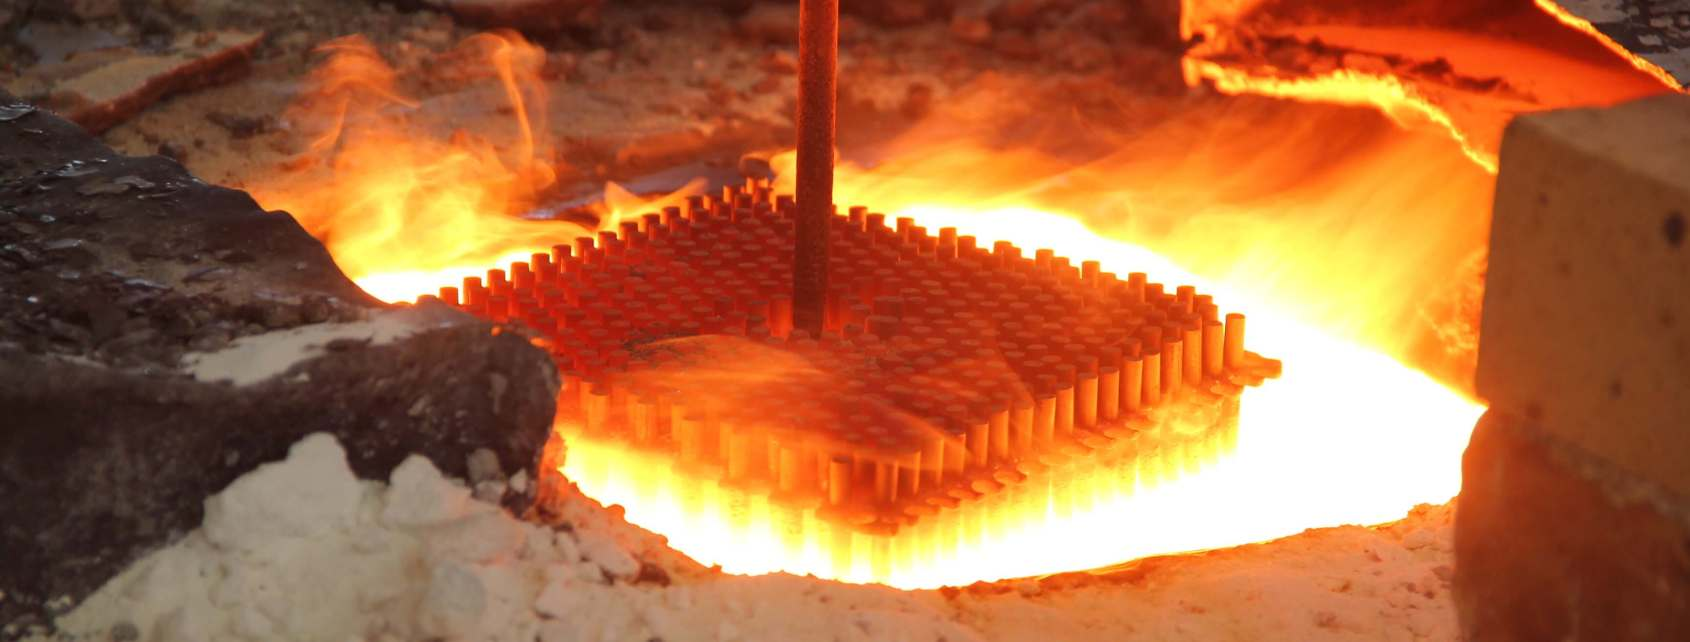 resize,m fill,w 1690,h 642# - The function of heat treatment for Cutting Tools